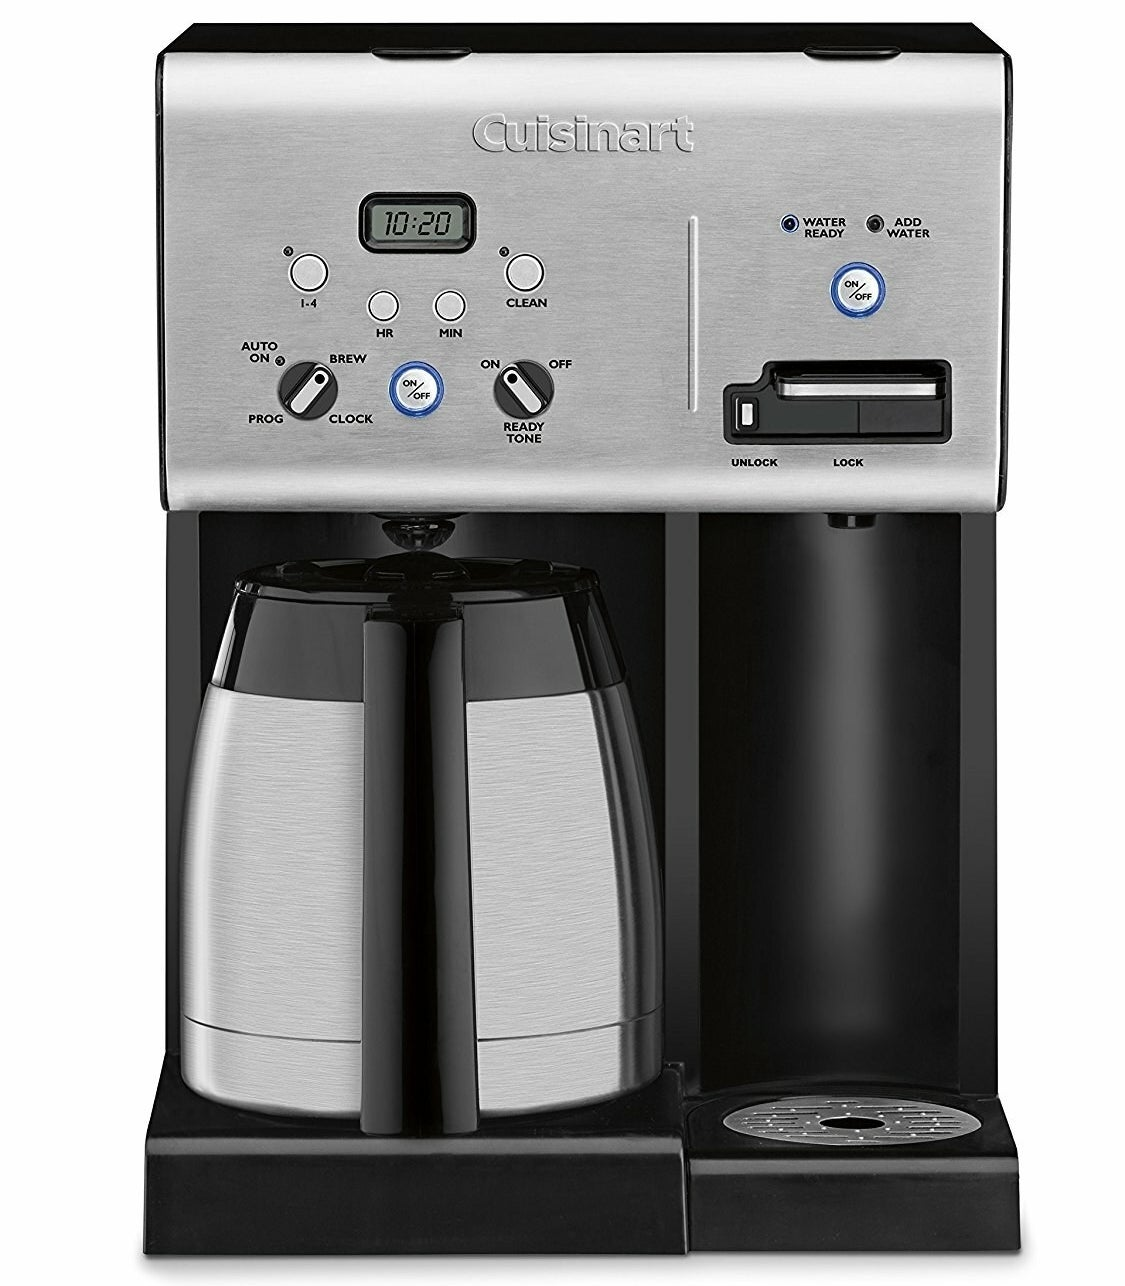 A sleek stainless steel coffee machine with buttons and a display for the time on top and two spots to brew coffee, one for a large carafe (included) and another tall enough for a travel mug